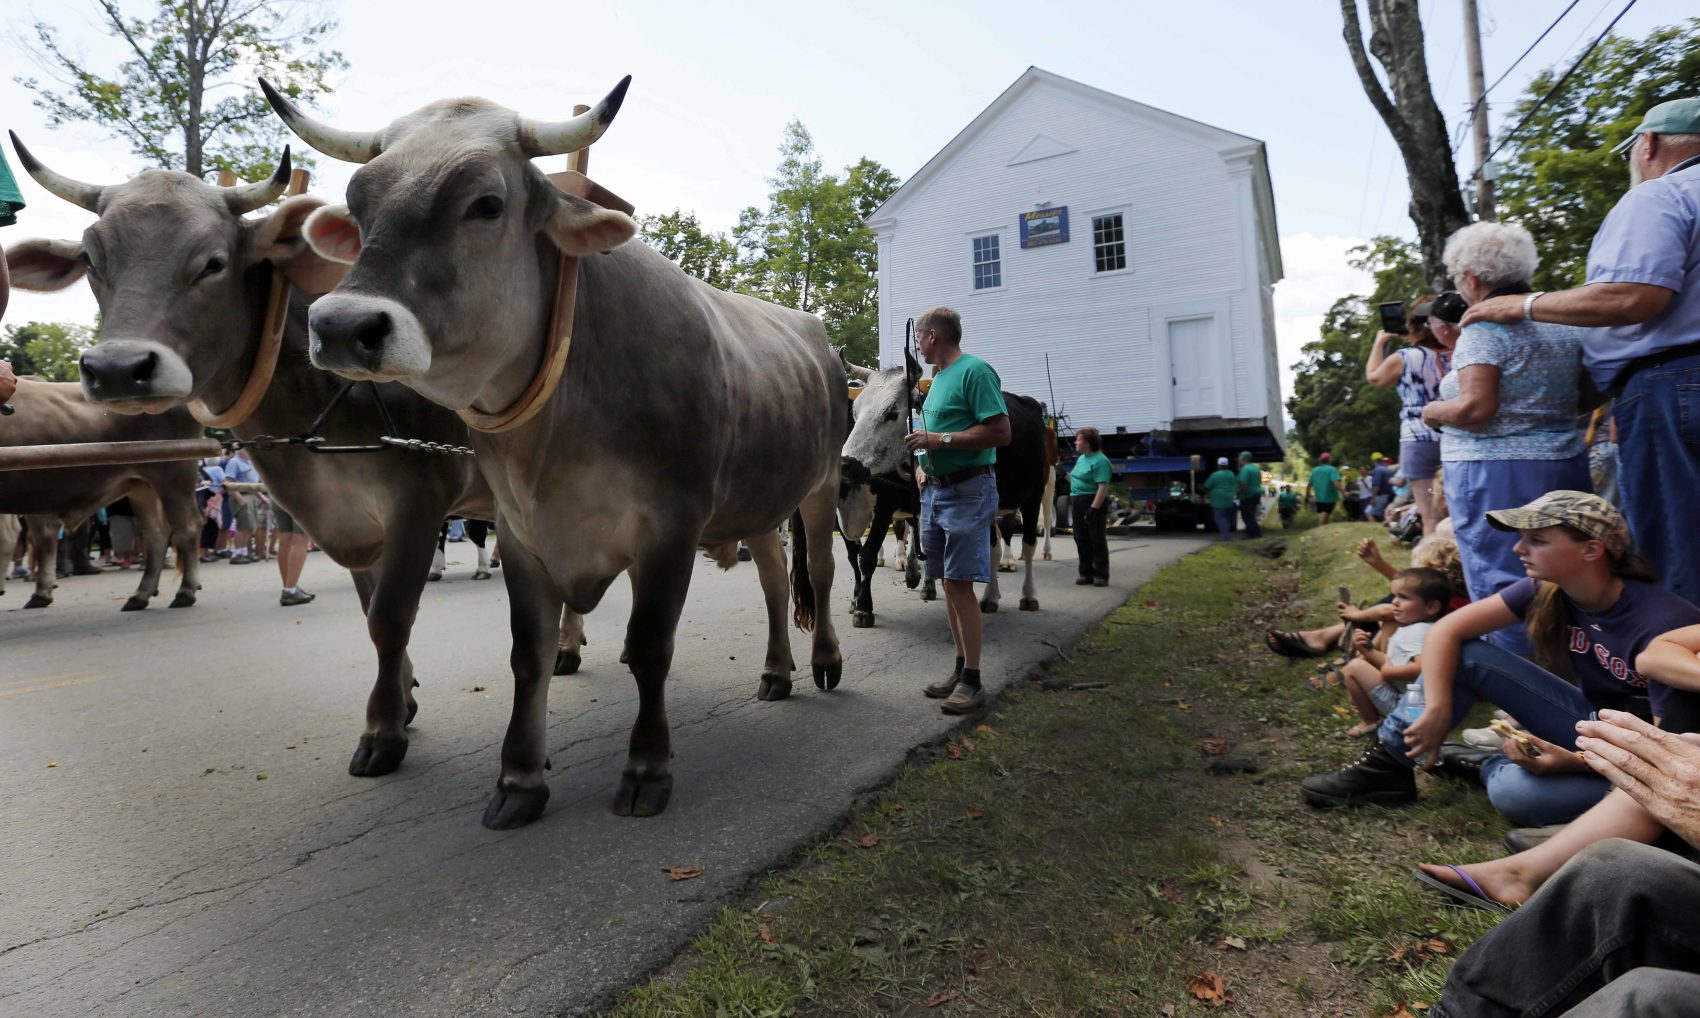 Approximately a thousand people showed up in Brownington, Vermont, on Monday to watch teams of oxen help pull the  Orleans County Grammar School, built in 1823, back to its original location. The oxen had the help of a modern day motor. (Jim Cole/AP)